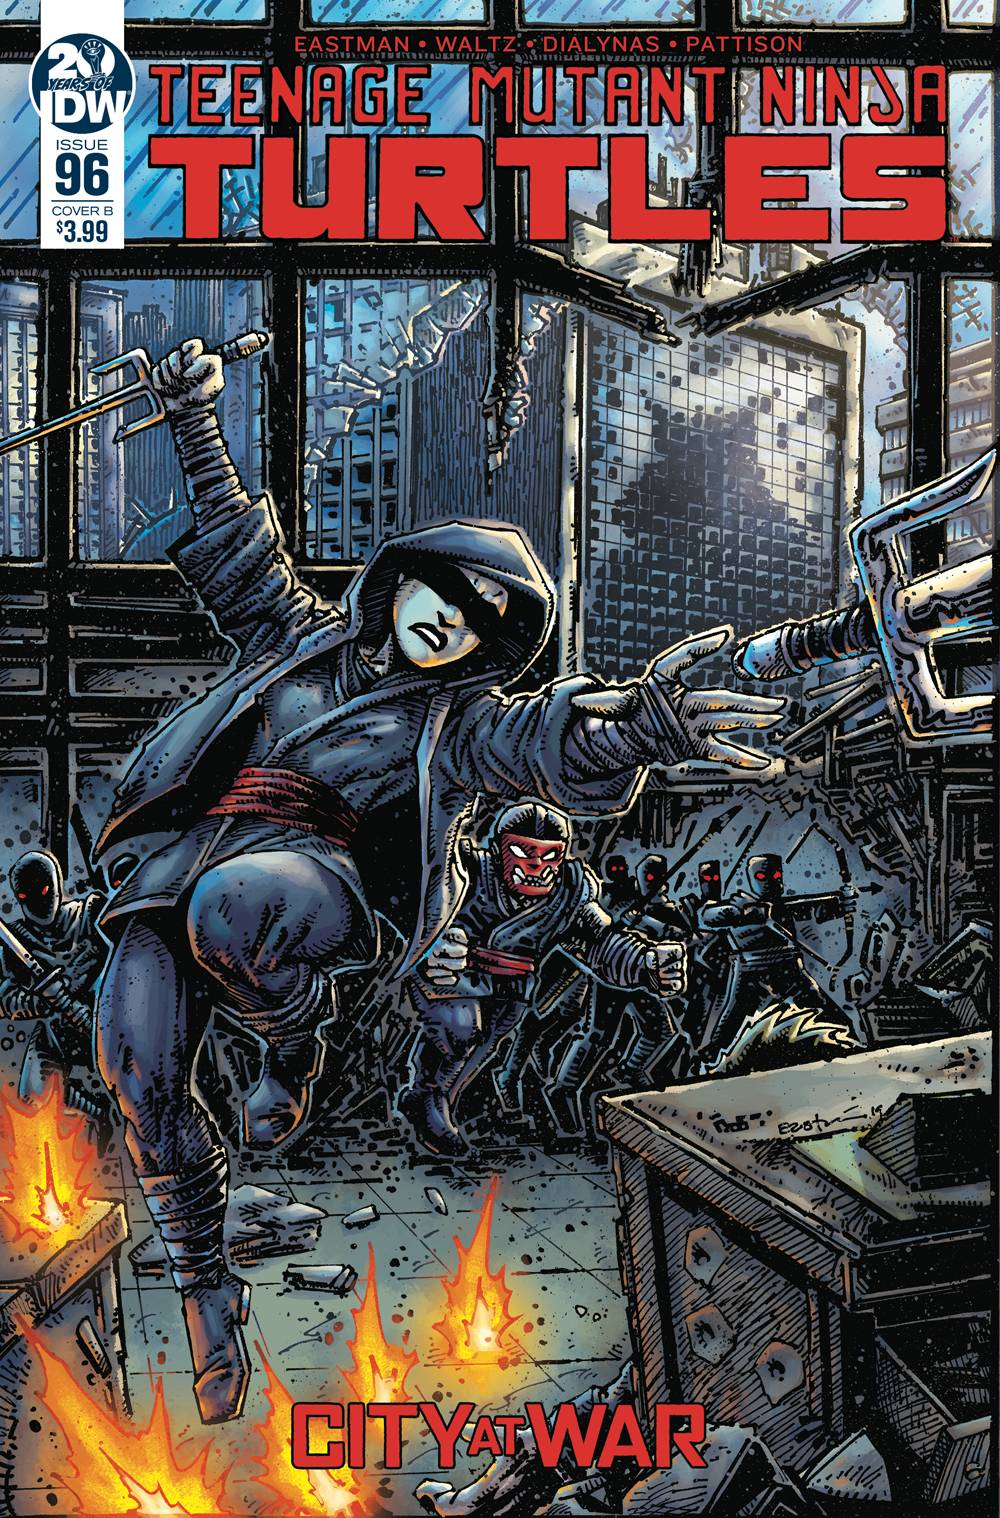 TMNT ONGOING 96 CVR B EASTMAN.jpg